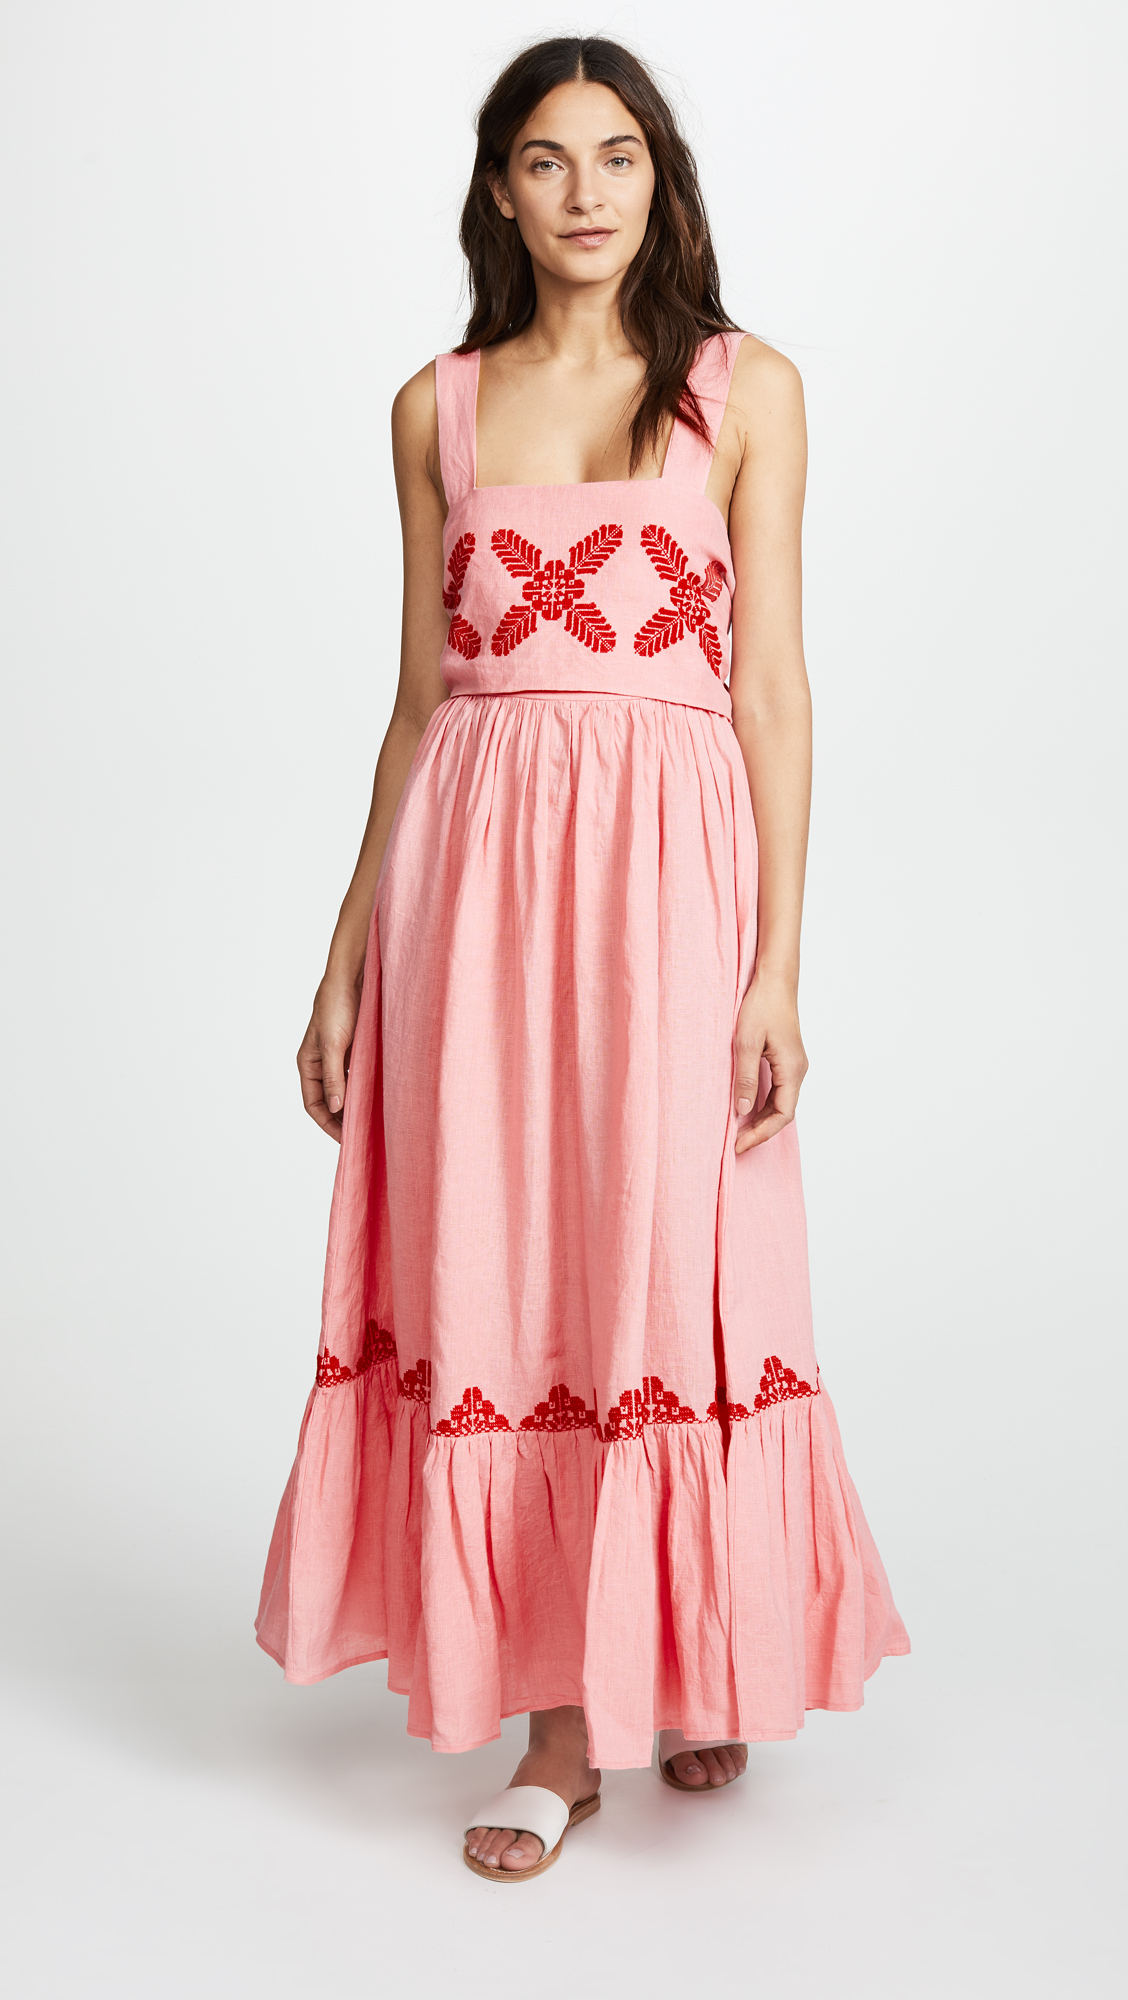 Pink Maxi Dress with Red Embroidery